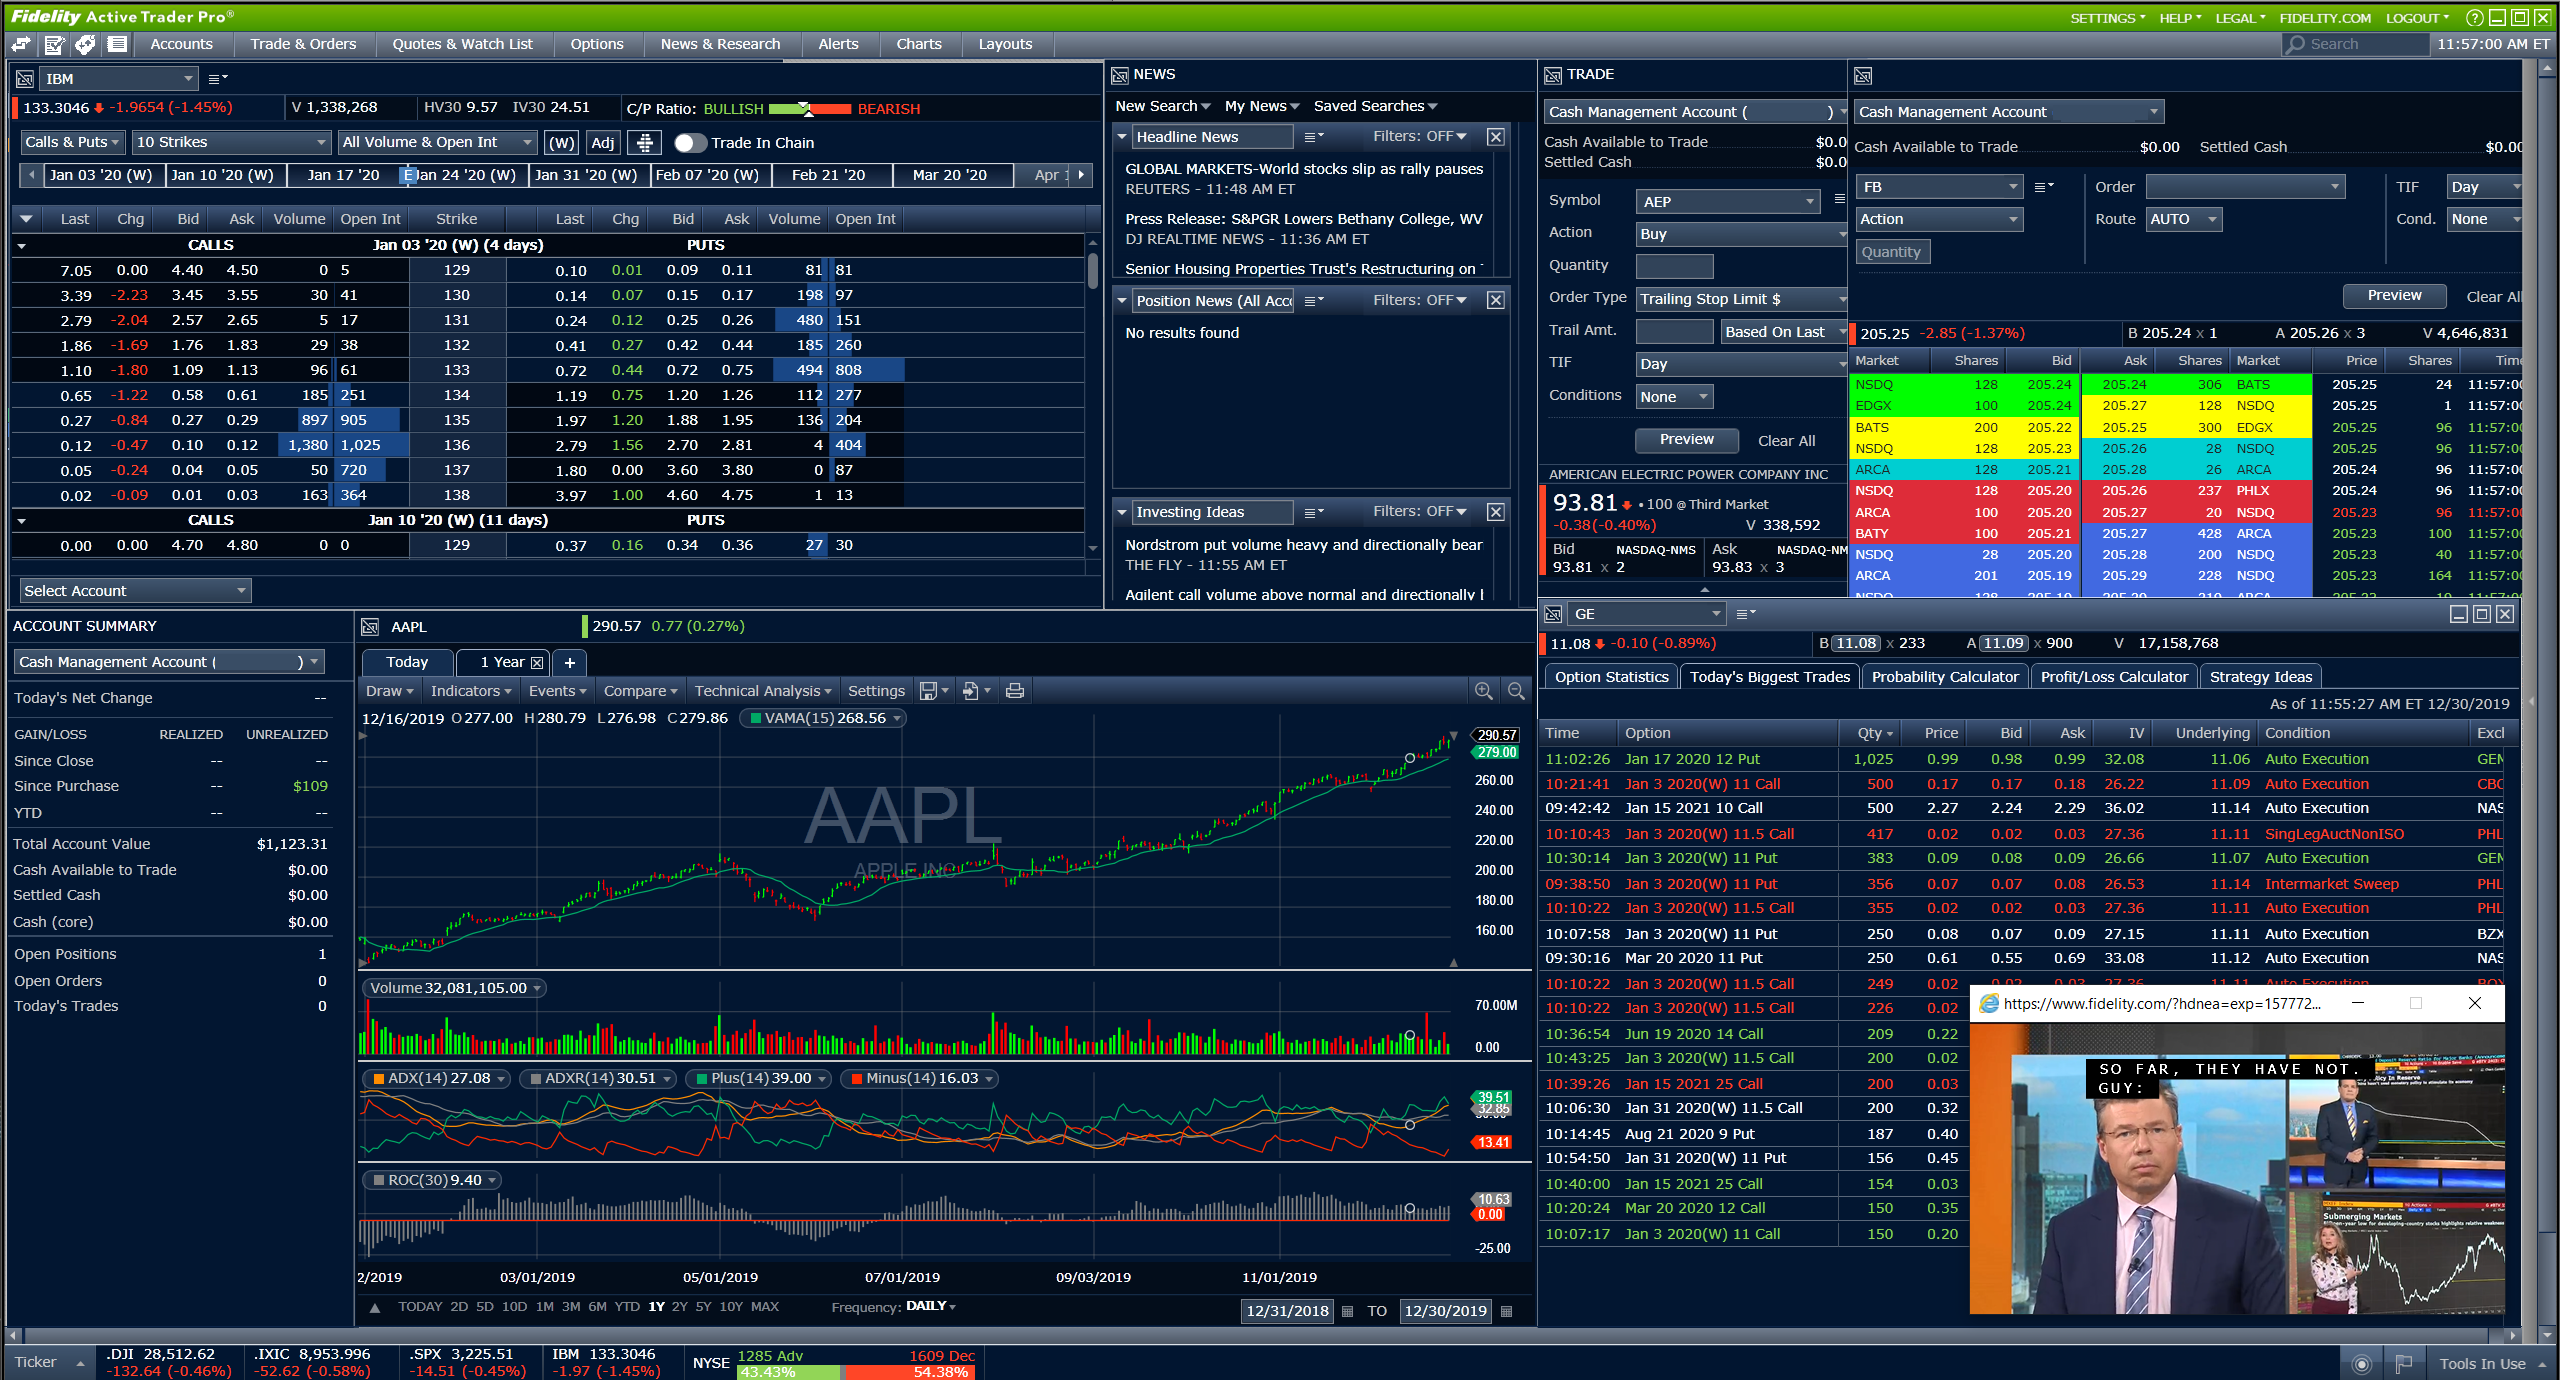 Fidelity Review: Active Trader Pro